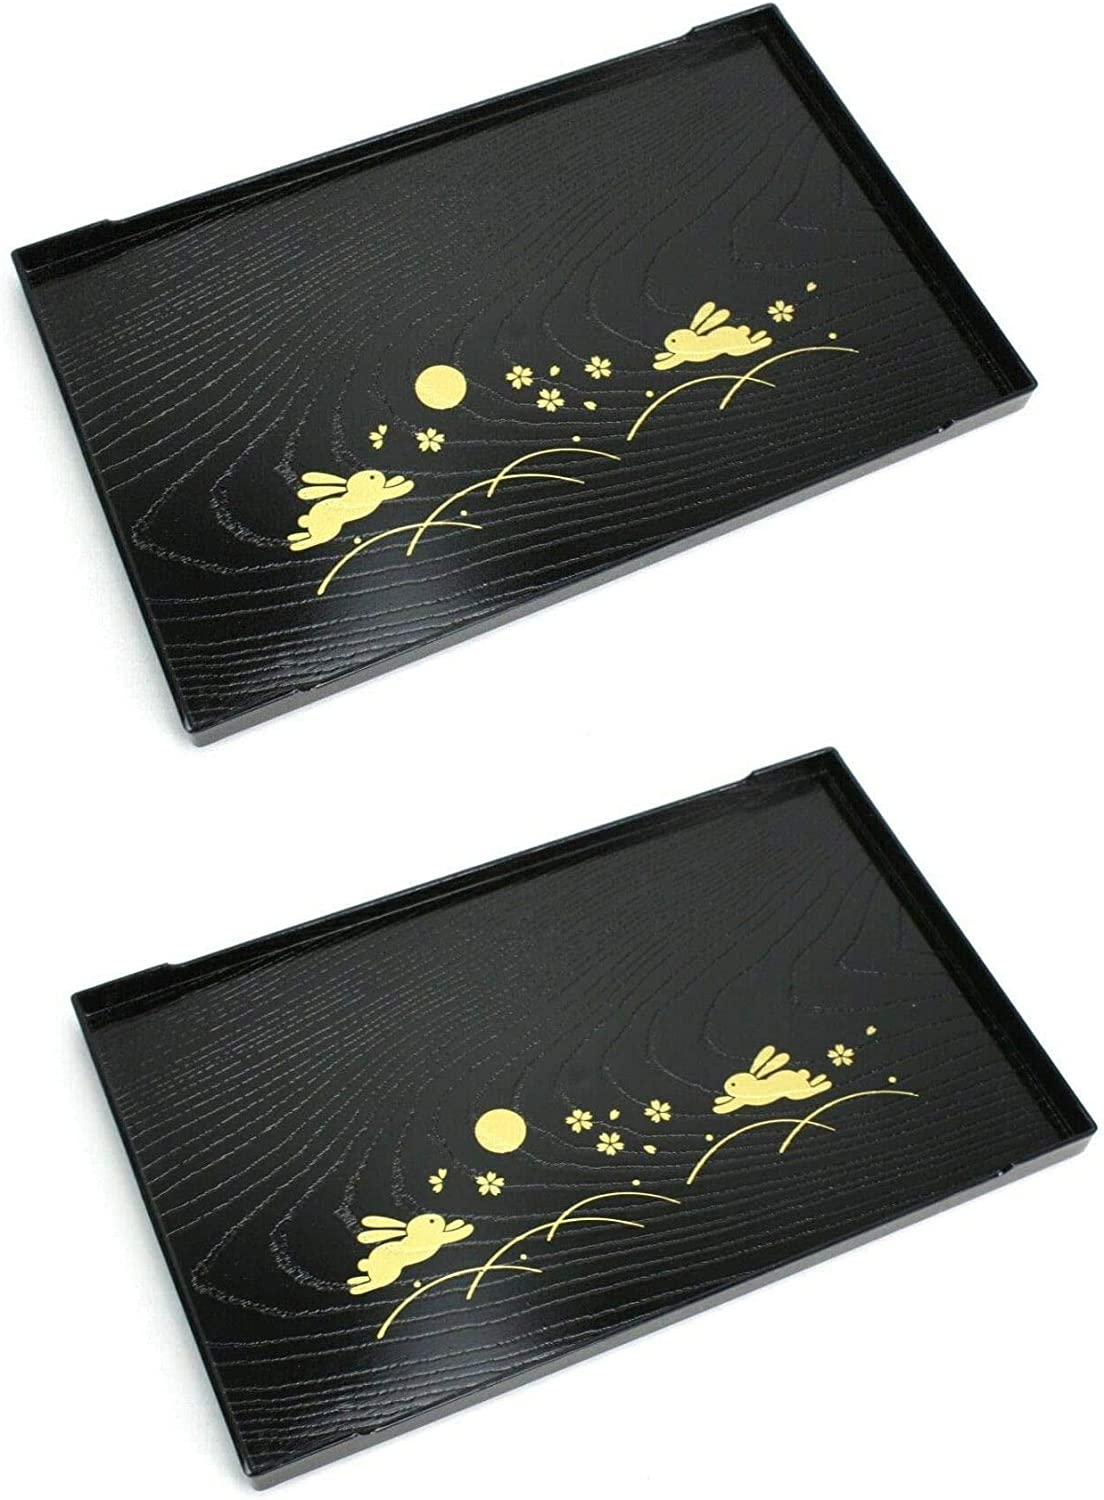 JapanBargain 2940x2, Set of 2 Japanese Tea Tray Sushi Plate Plastic Black Tray Snack Plate, Bunny Rabbit and Moon Print, Made in Japan, 10x6.25 inch